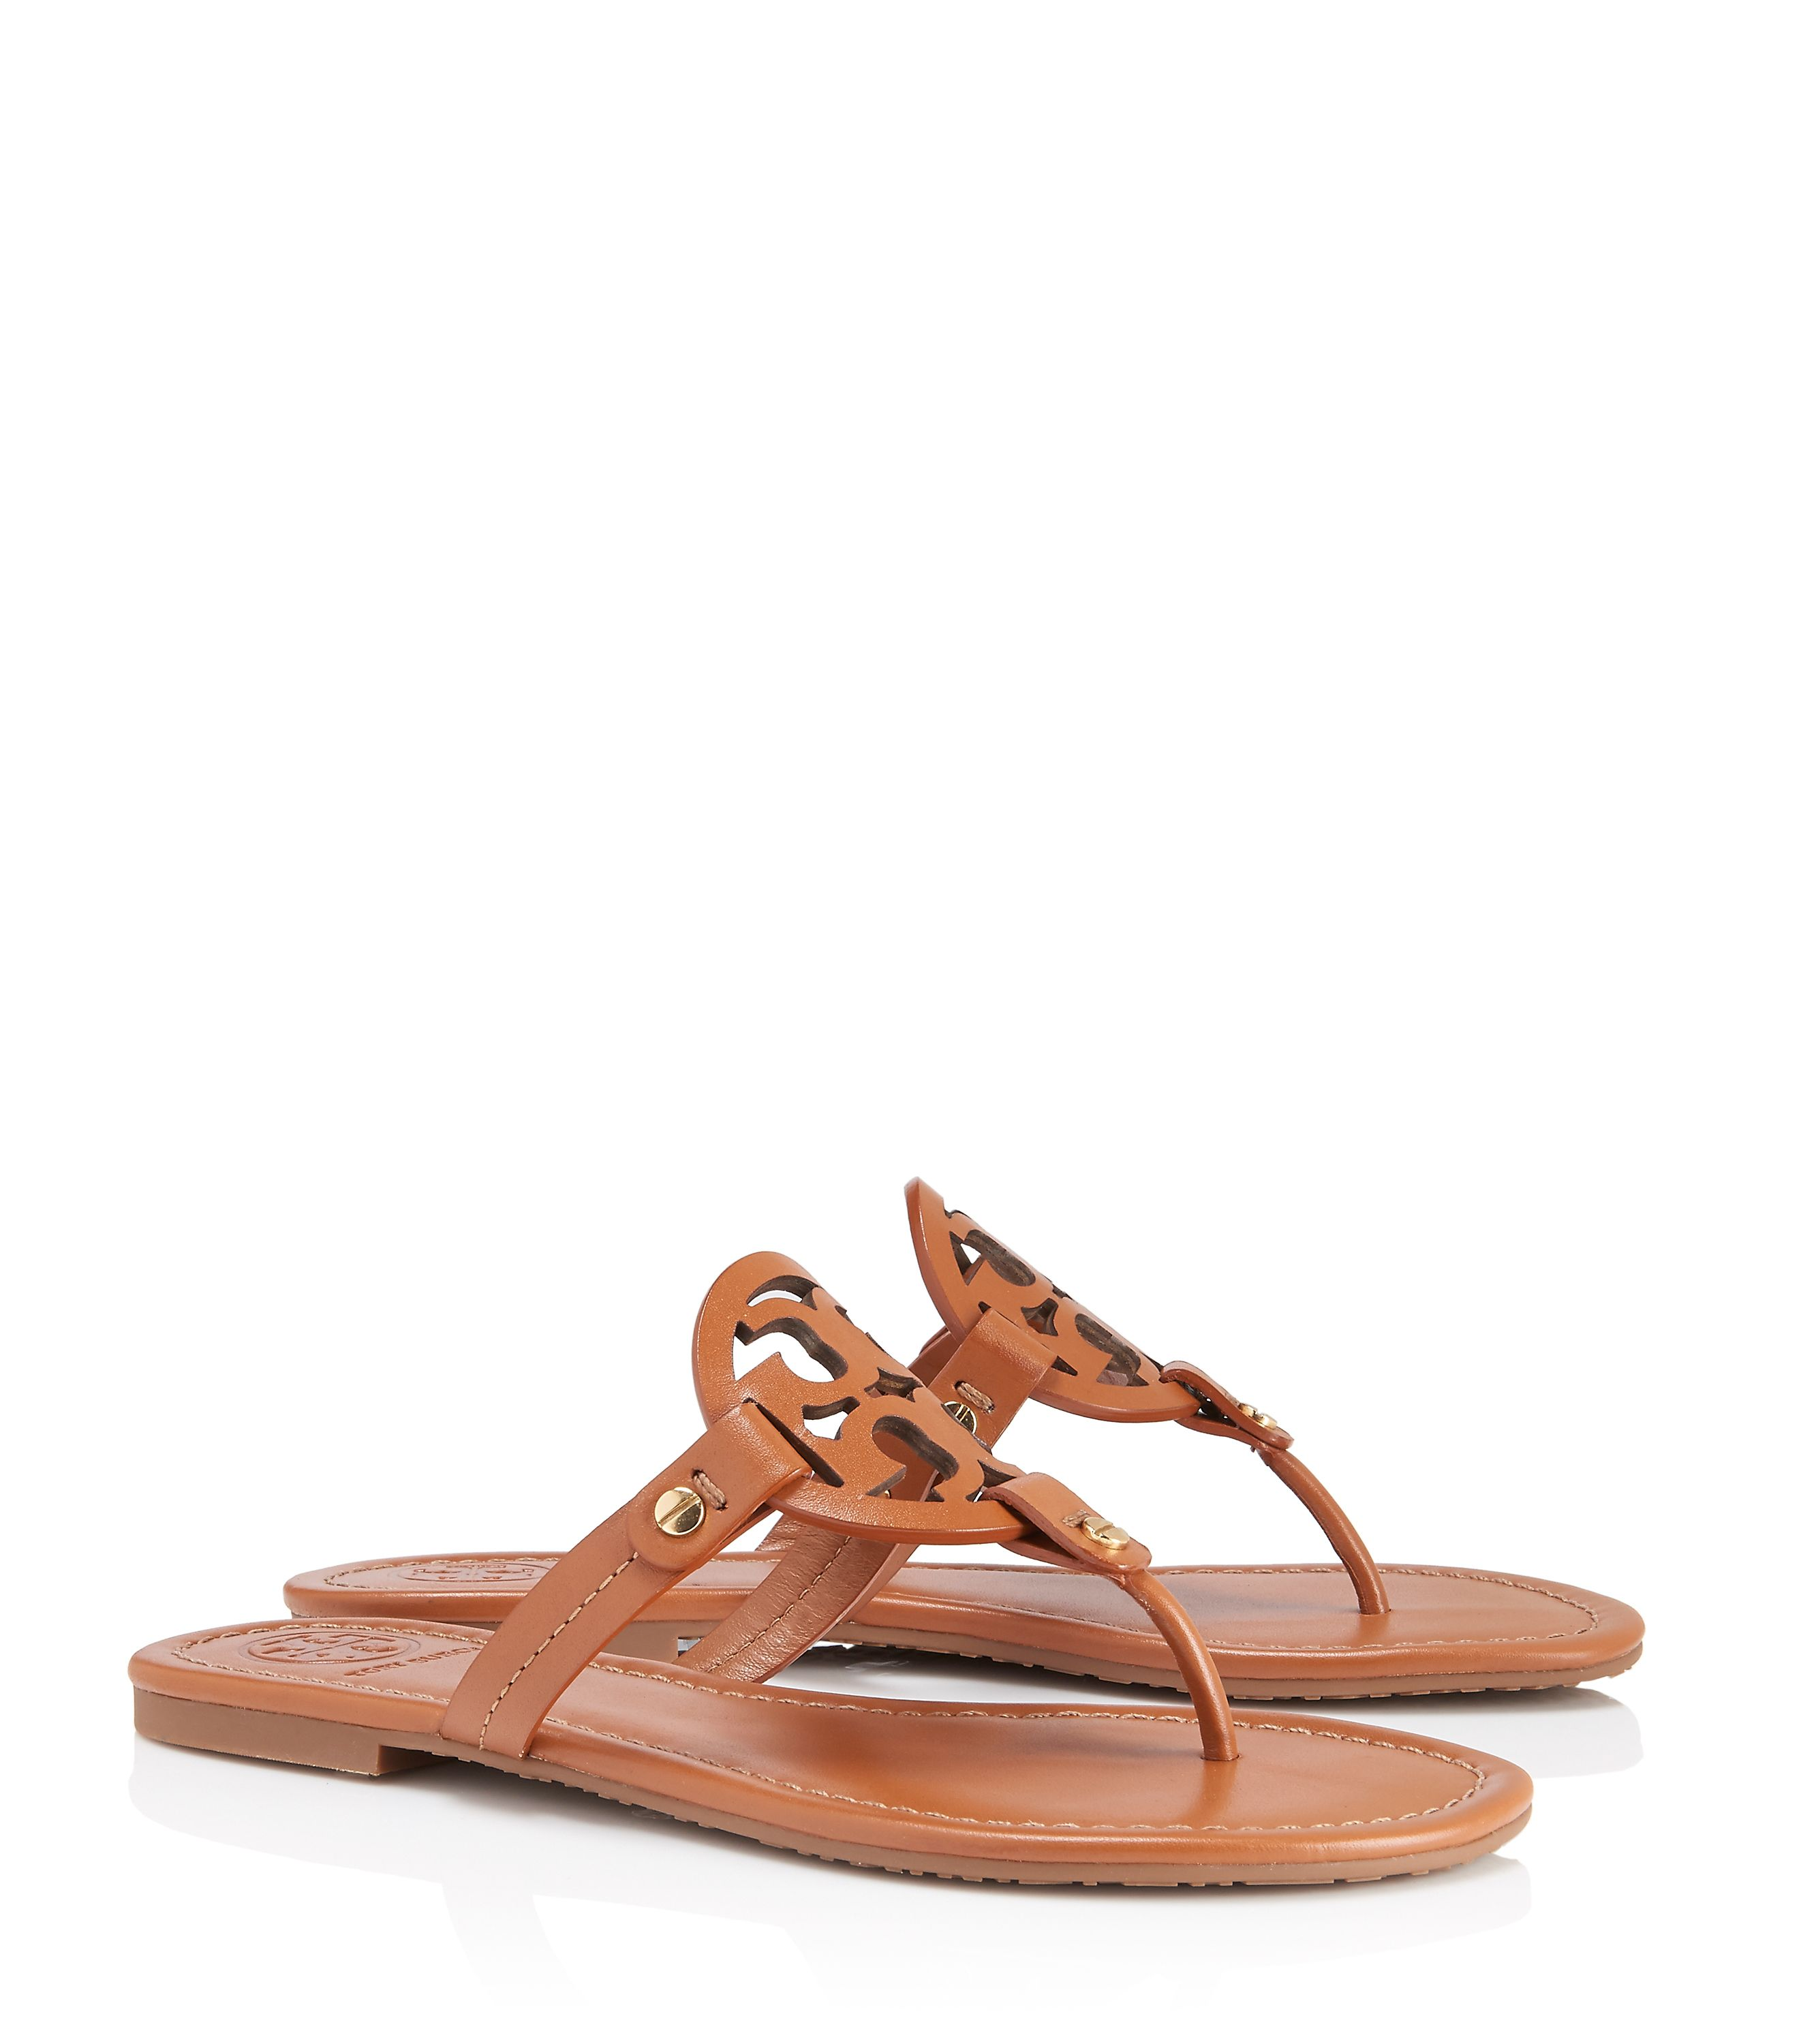 Sale alerts for Tory Burch MILLER SANDAL - Covvet